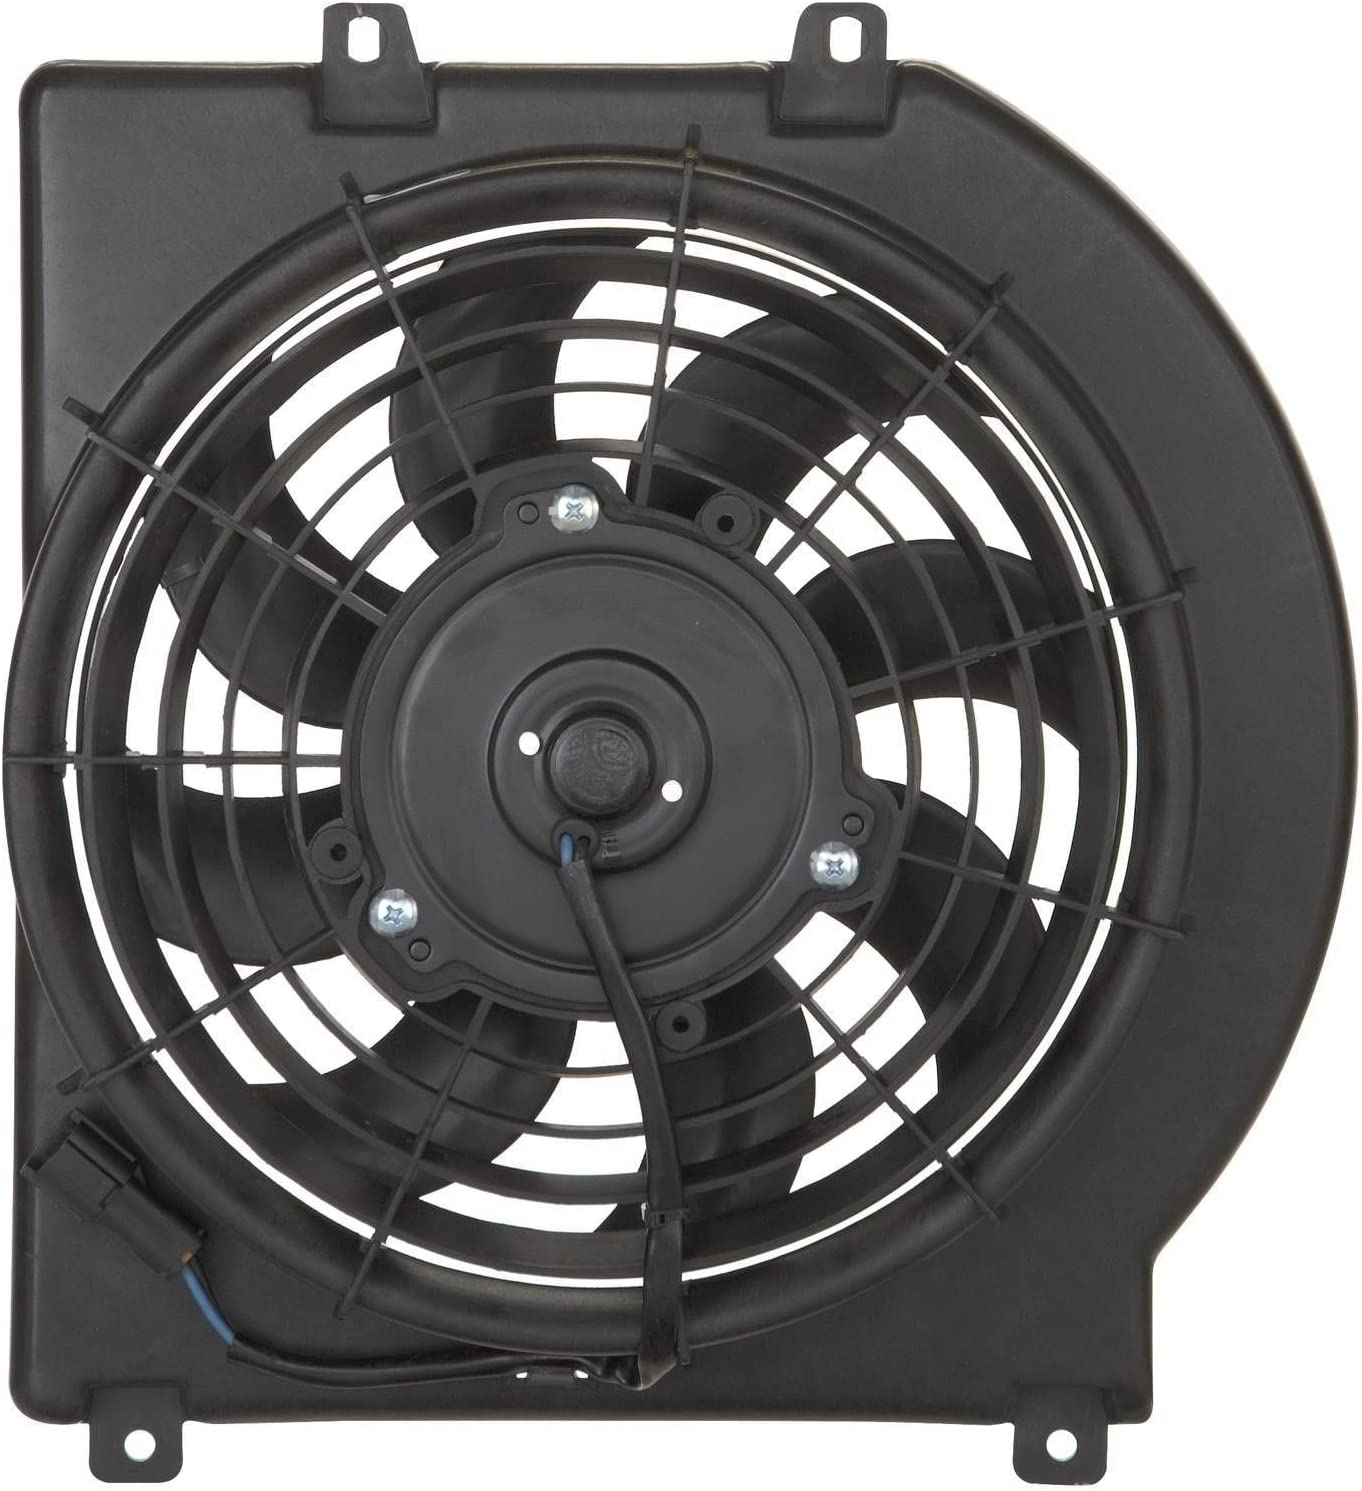 WIGGLEYS A C CONDENSER COOLING FAN IZ3113101 Super popular specialty store 98-04 FITS ISUZU RO outlet